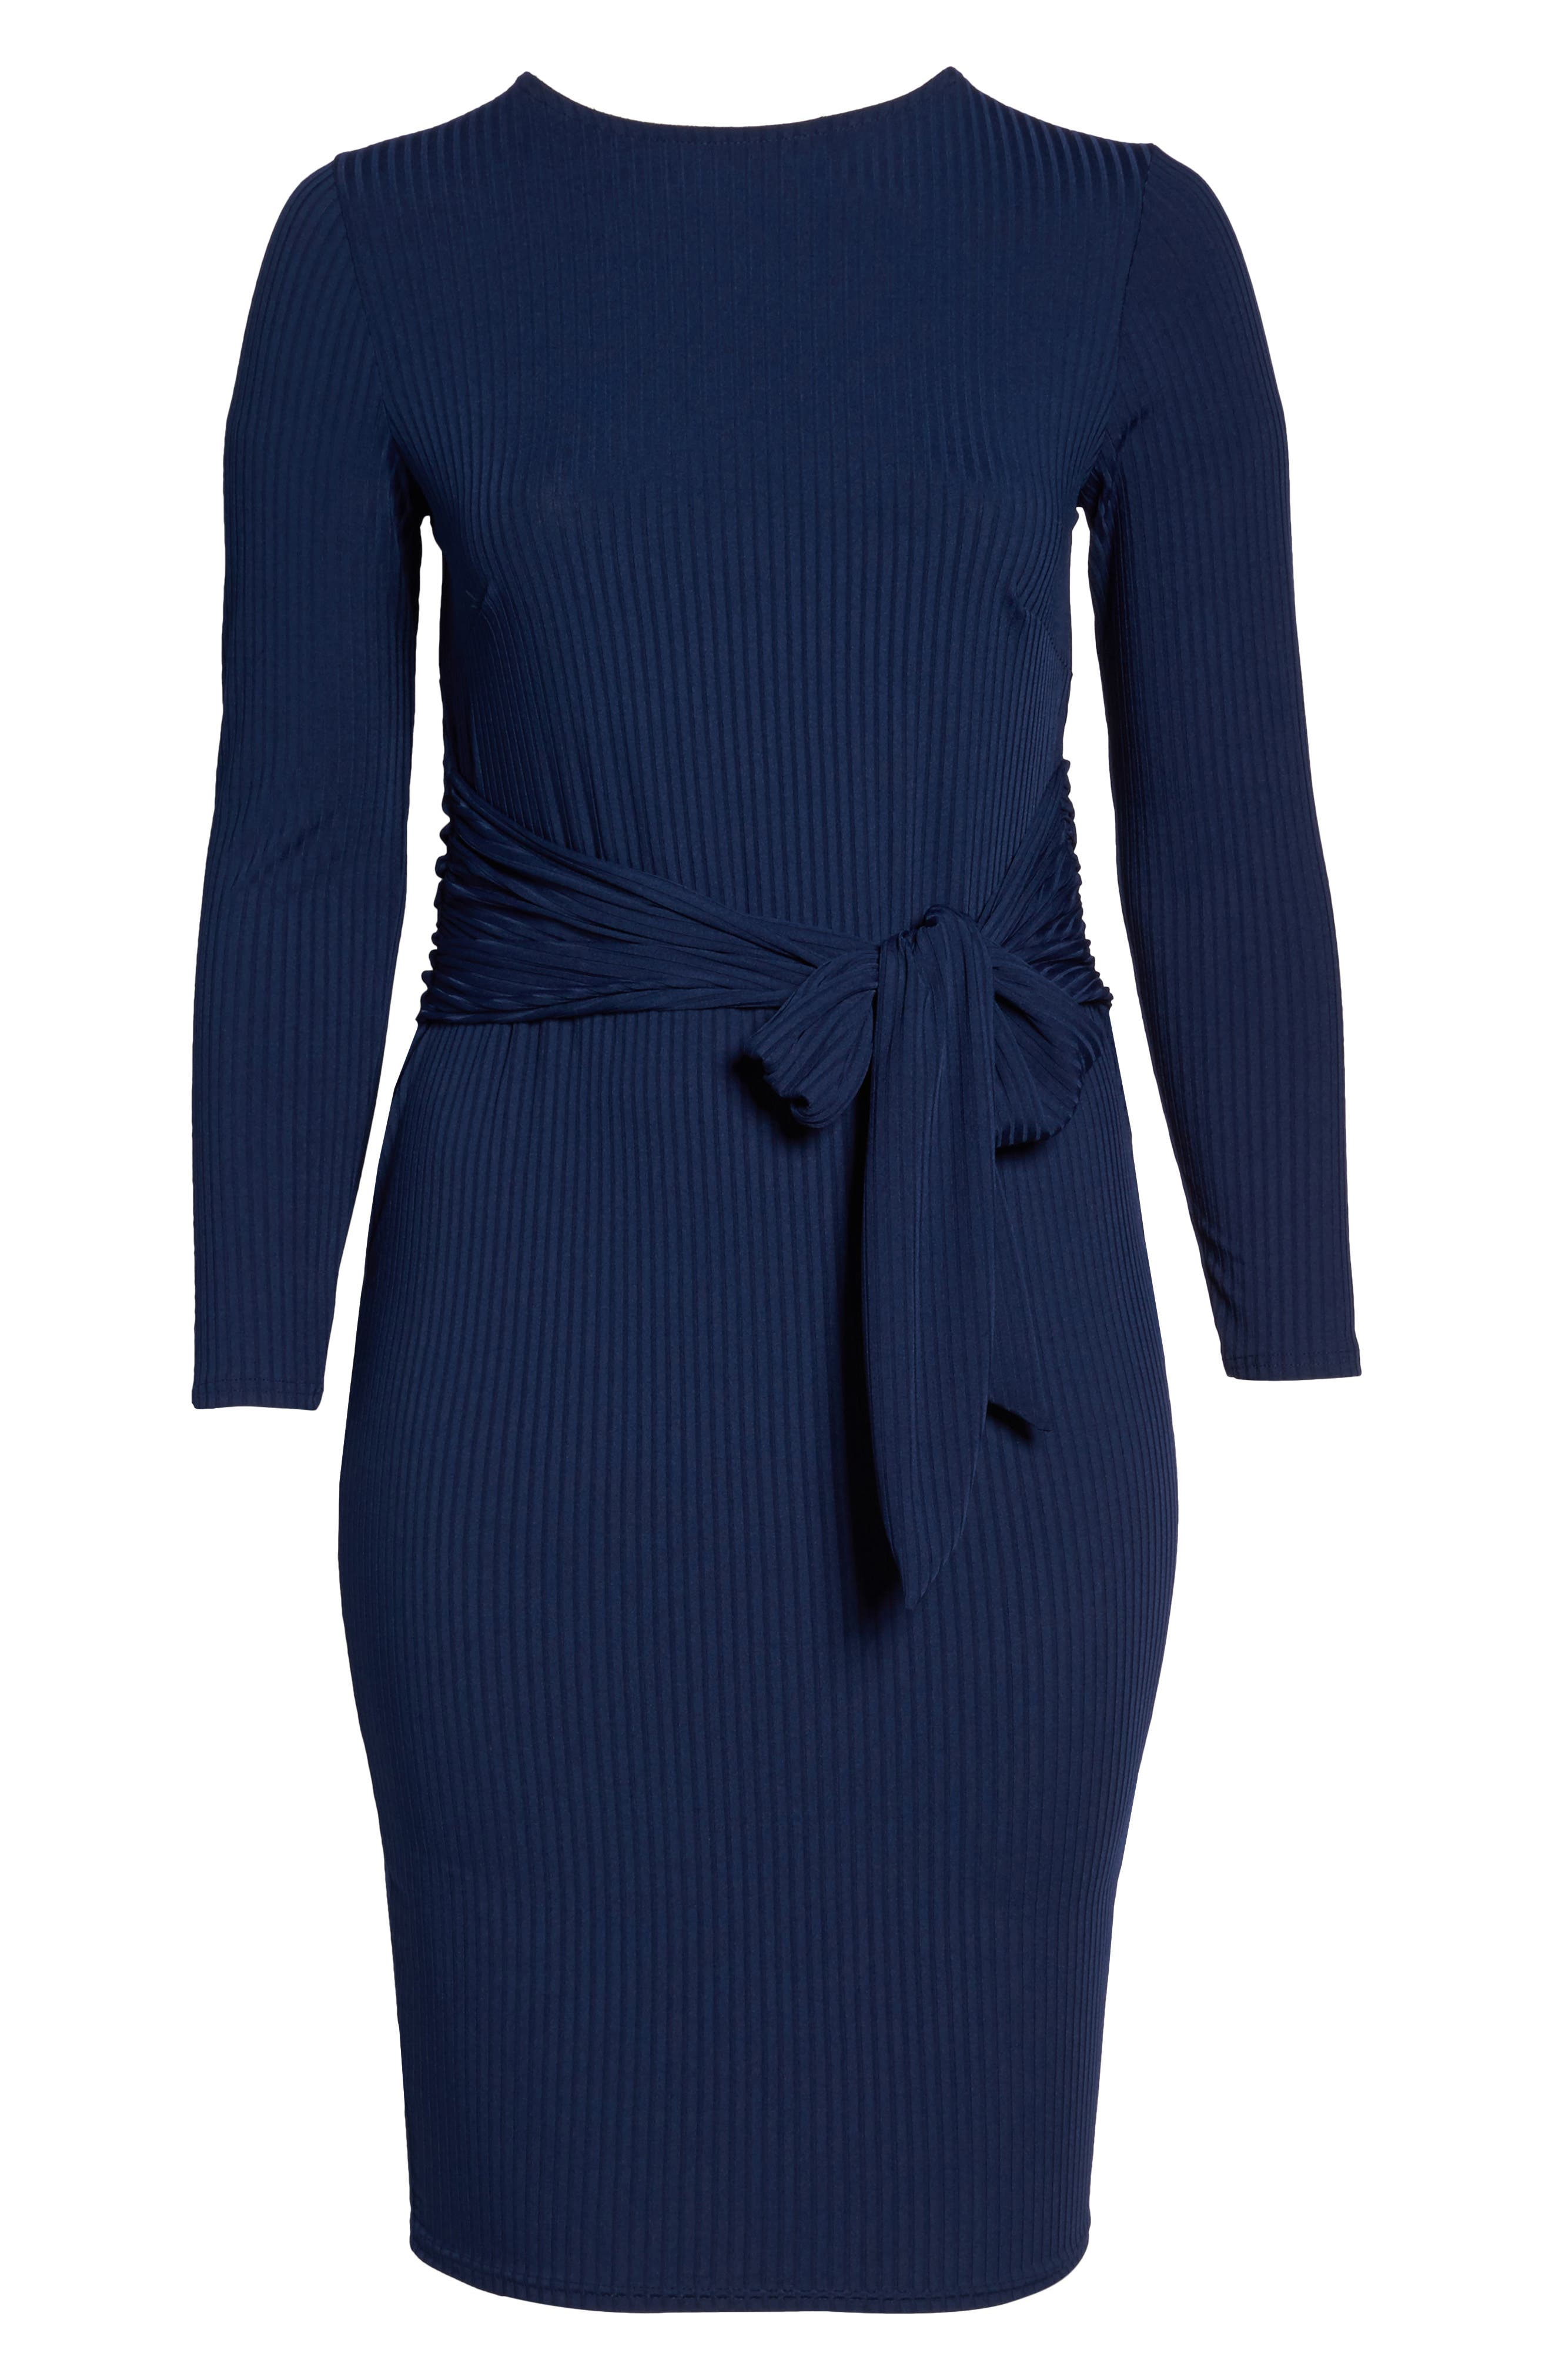 Tie Front Ribbed Sheath Dress,                             Alternate thumbnail 8, color,                             Navy